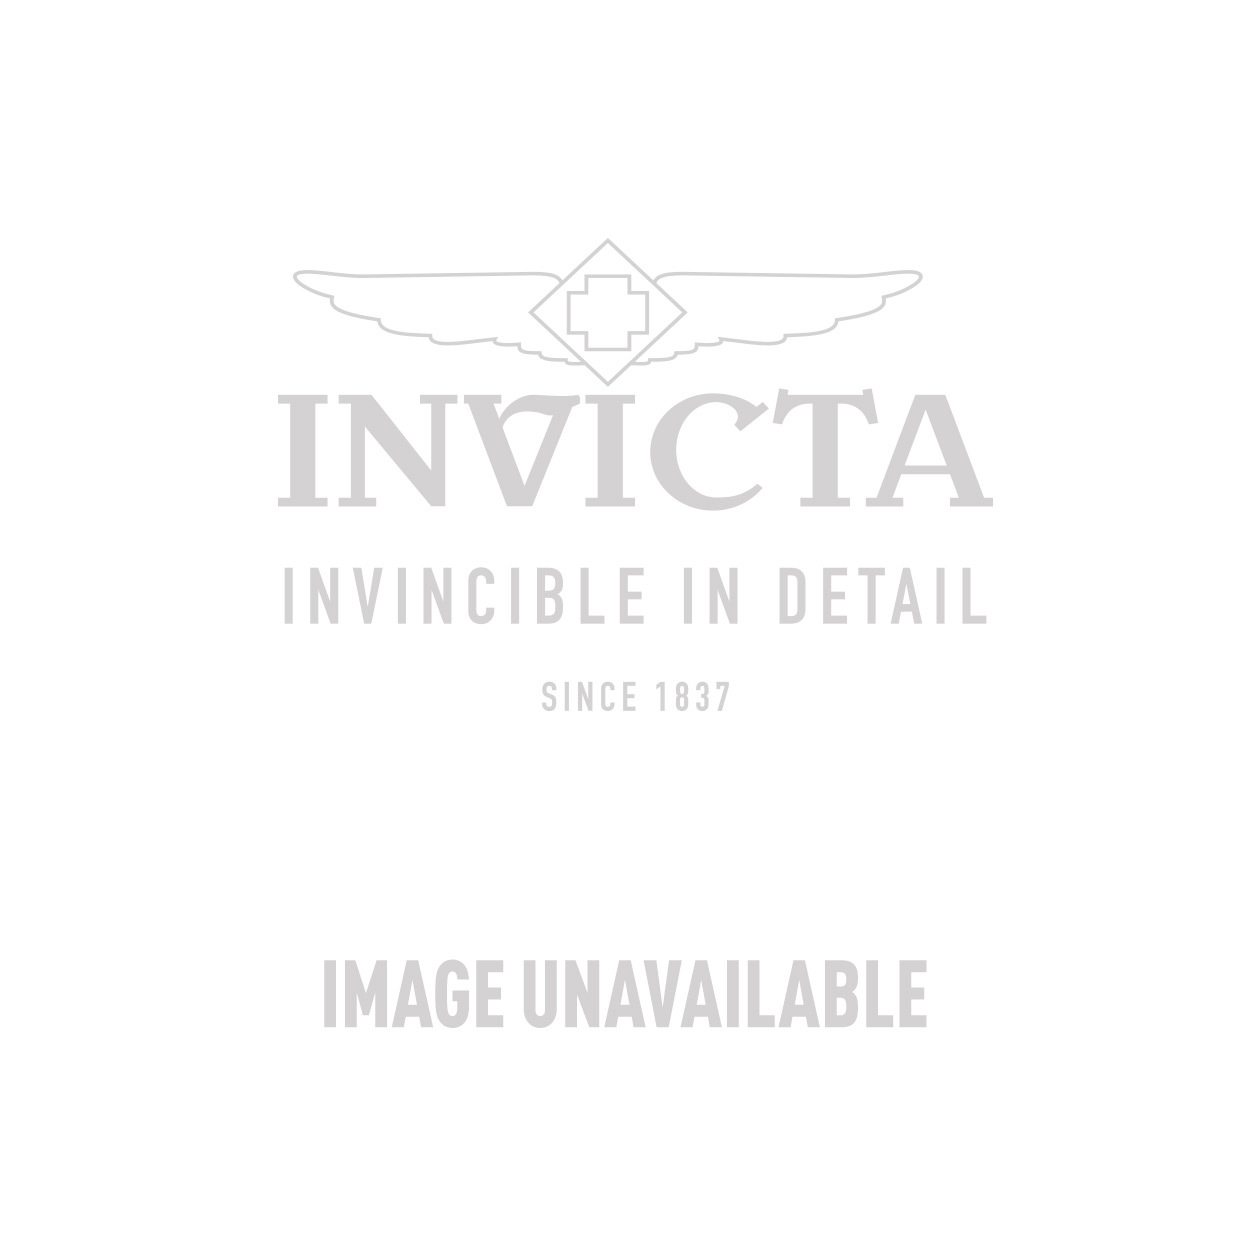 Invicta Pro Diver Automatic Watch - Stainless Steel case Stainless Steel band - Model 9403